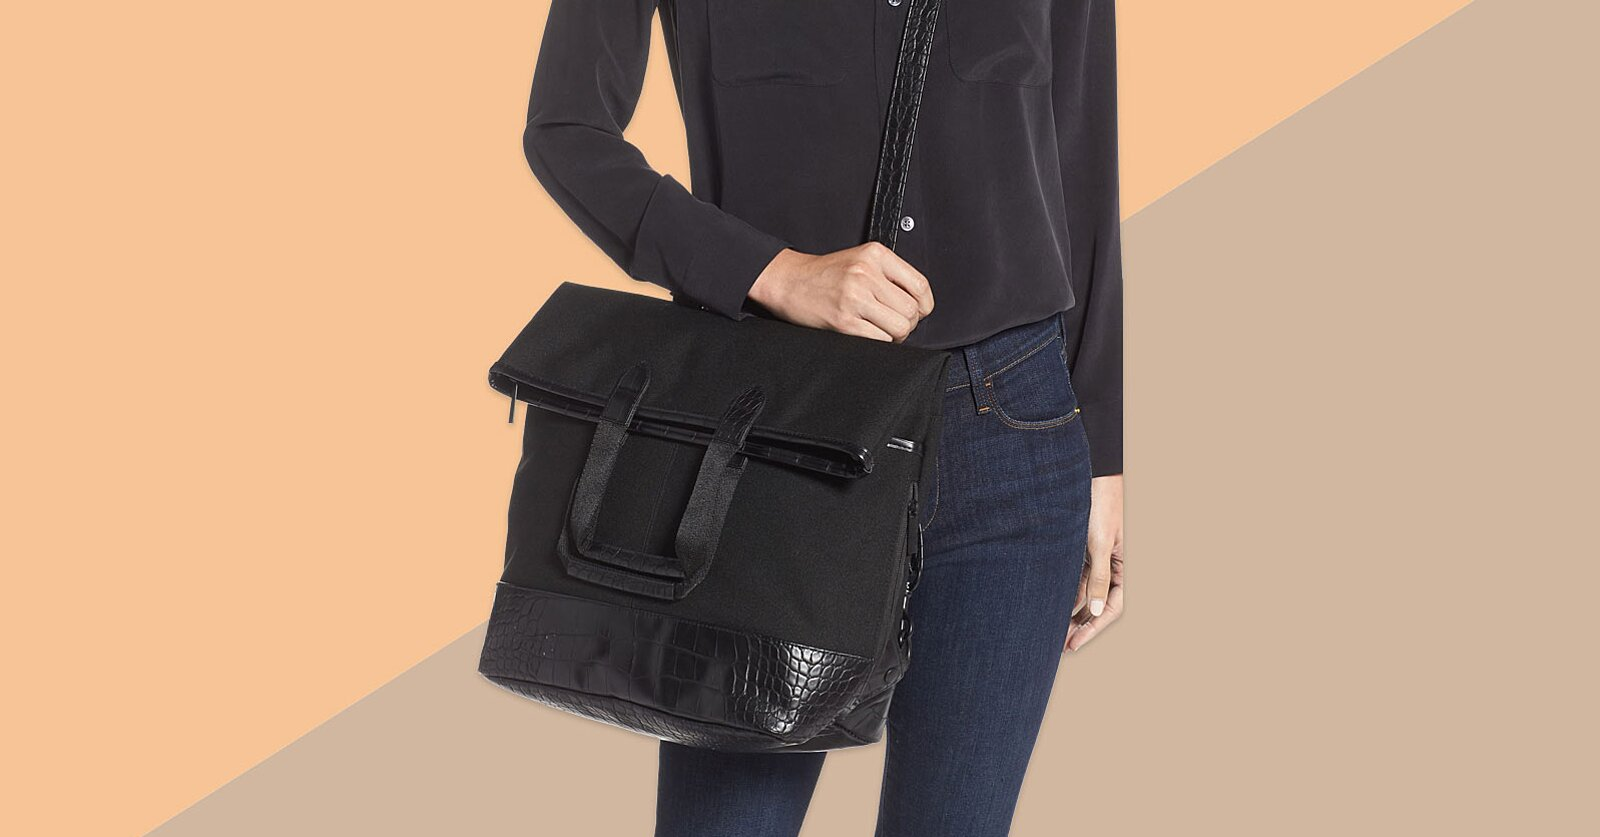 Versatile Travel Bag Is Both a Tote and a Backpack